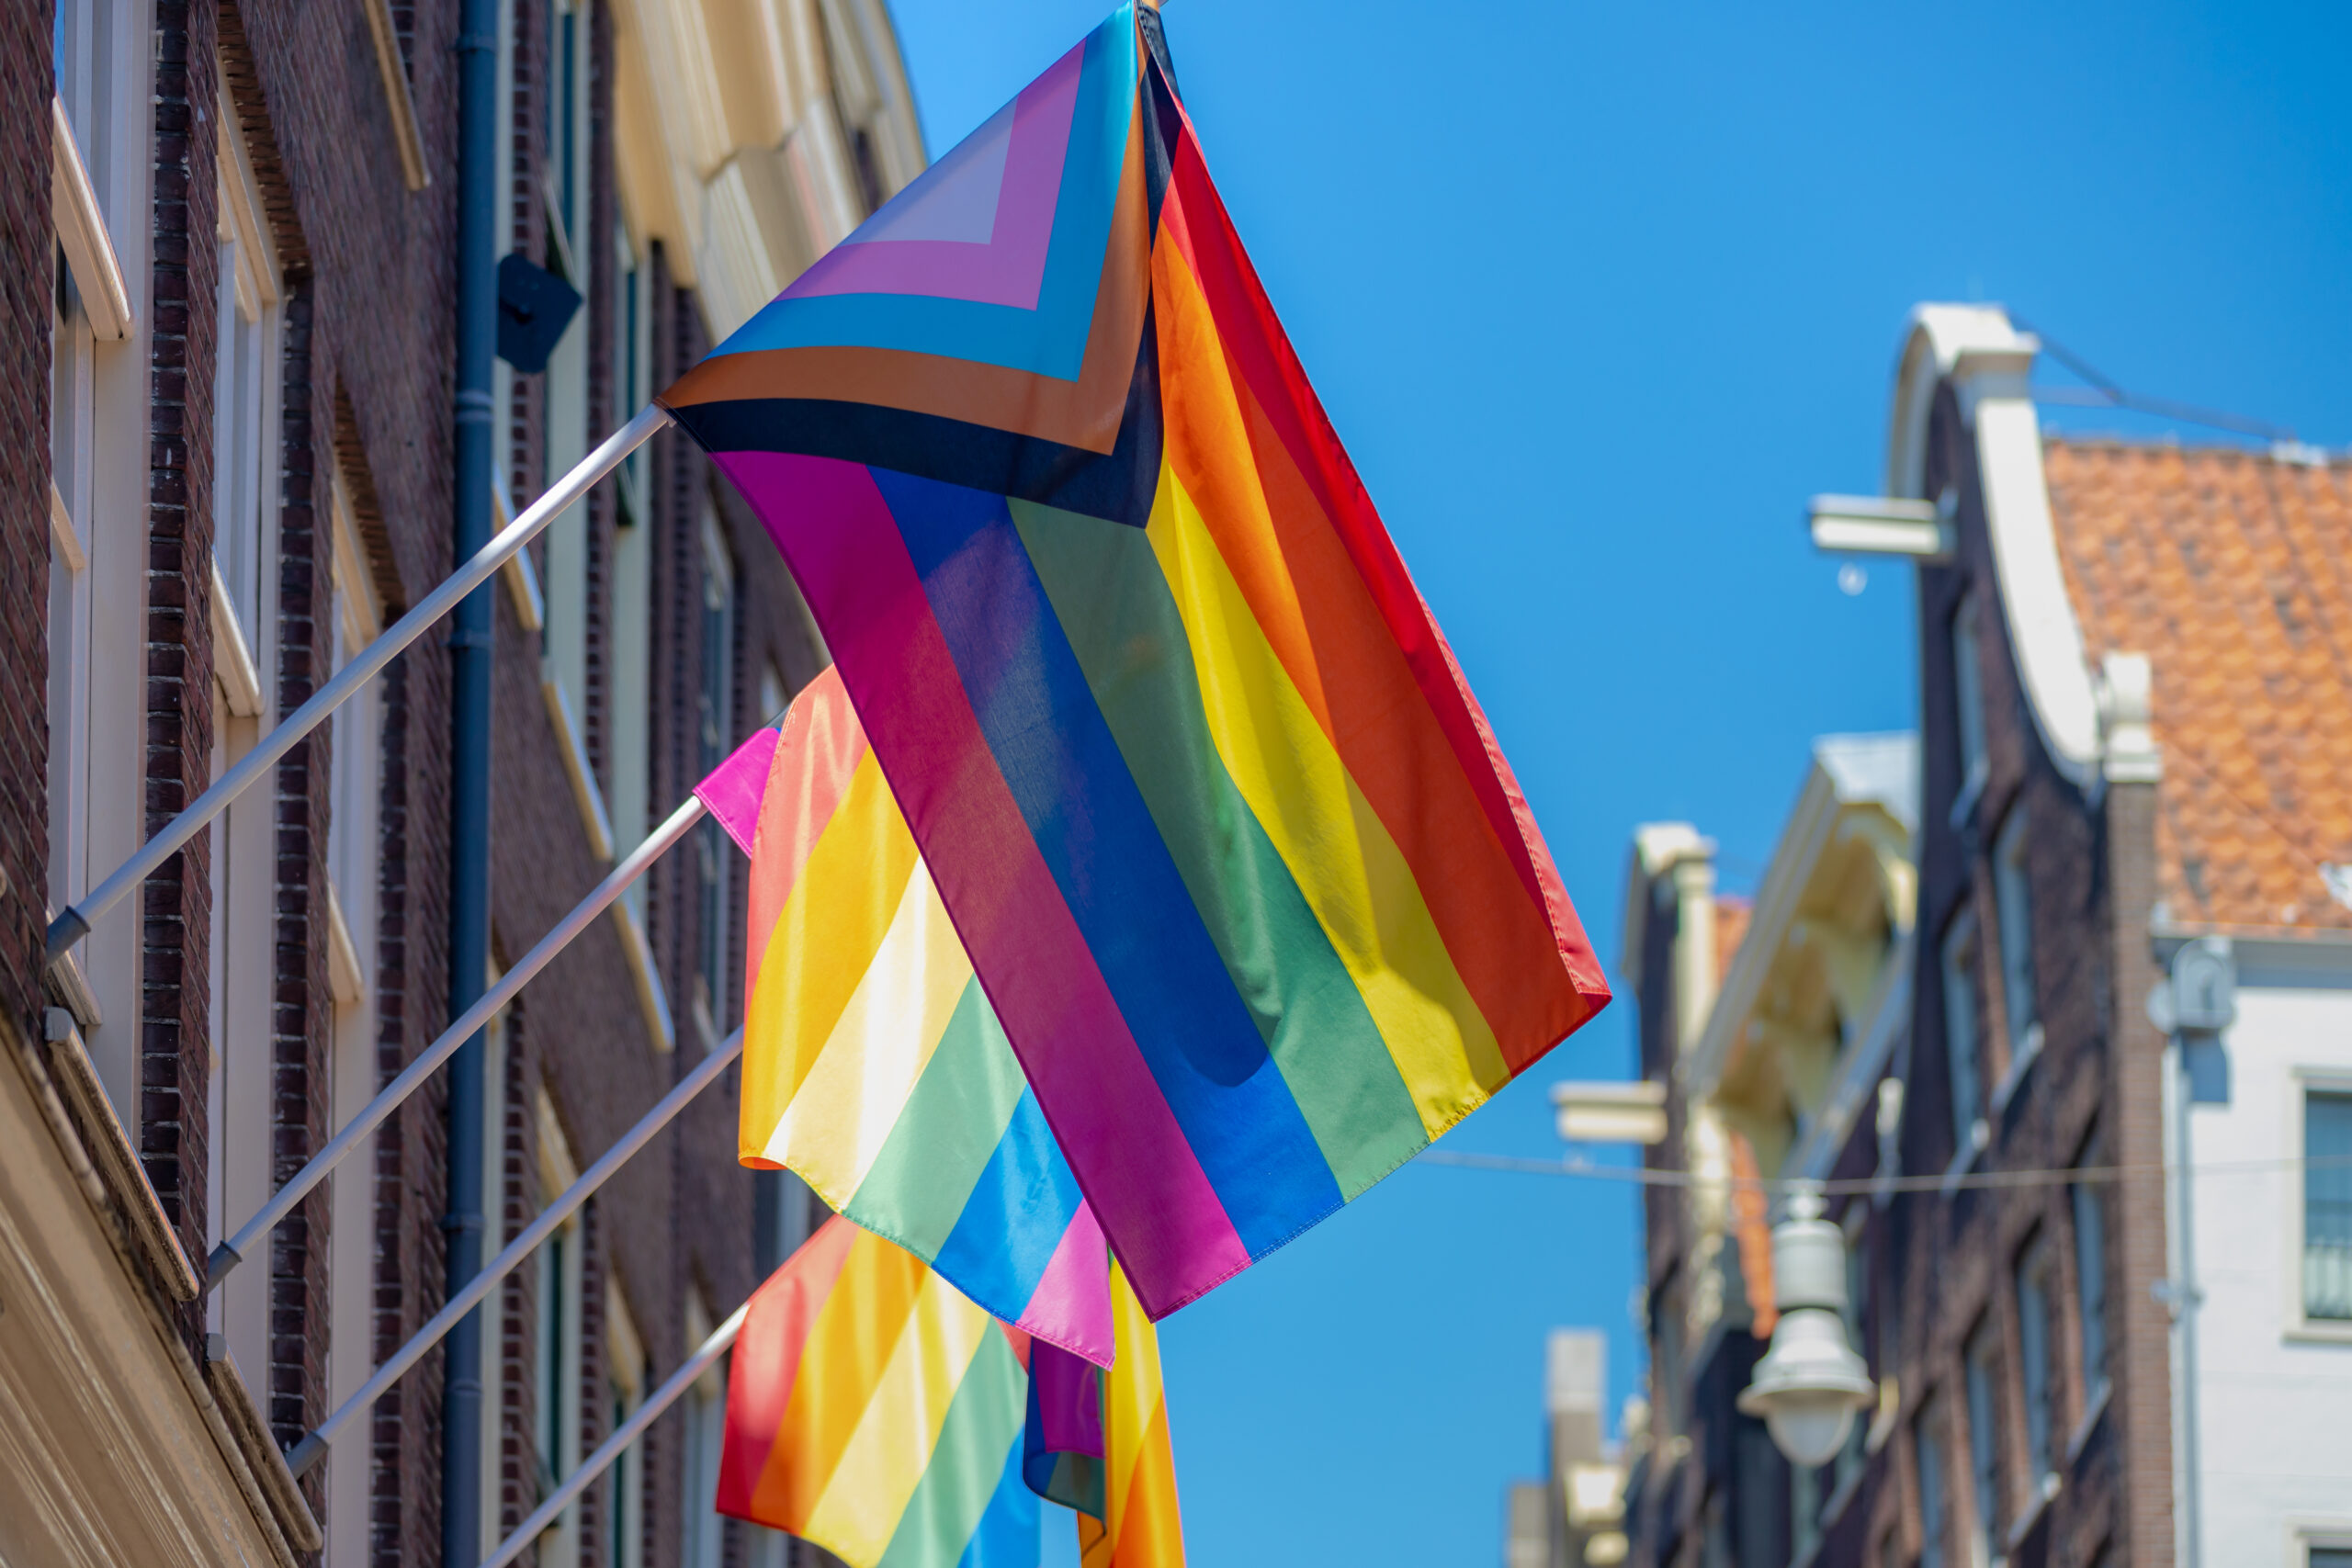 How many versions of the Pride flag are there now? You might be surprised.